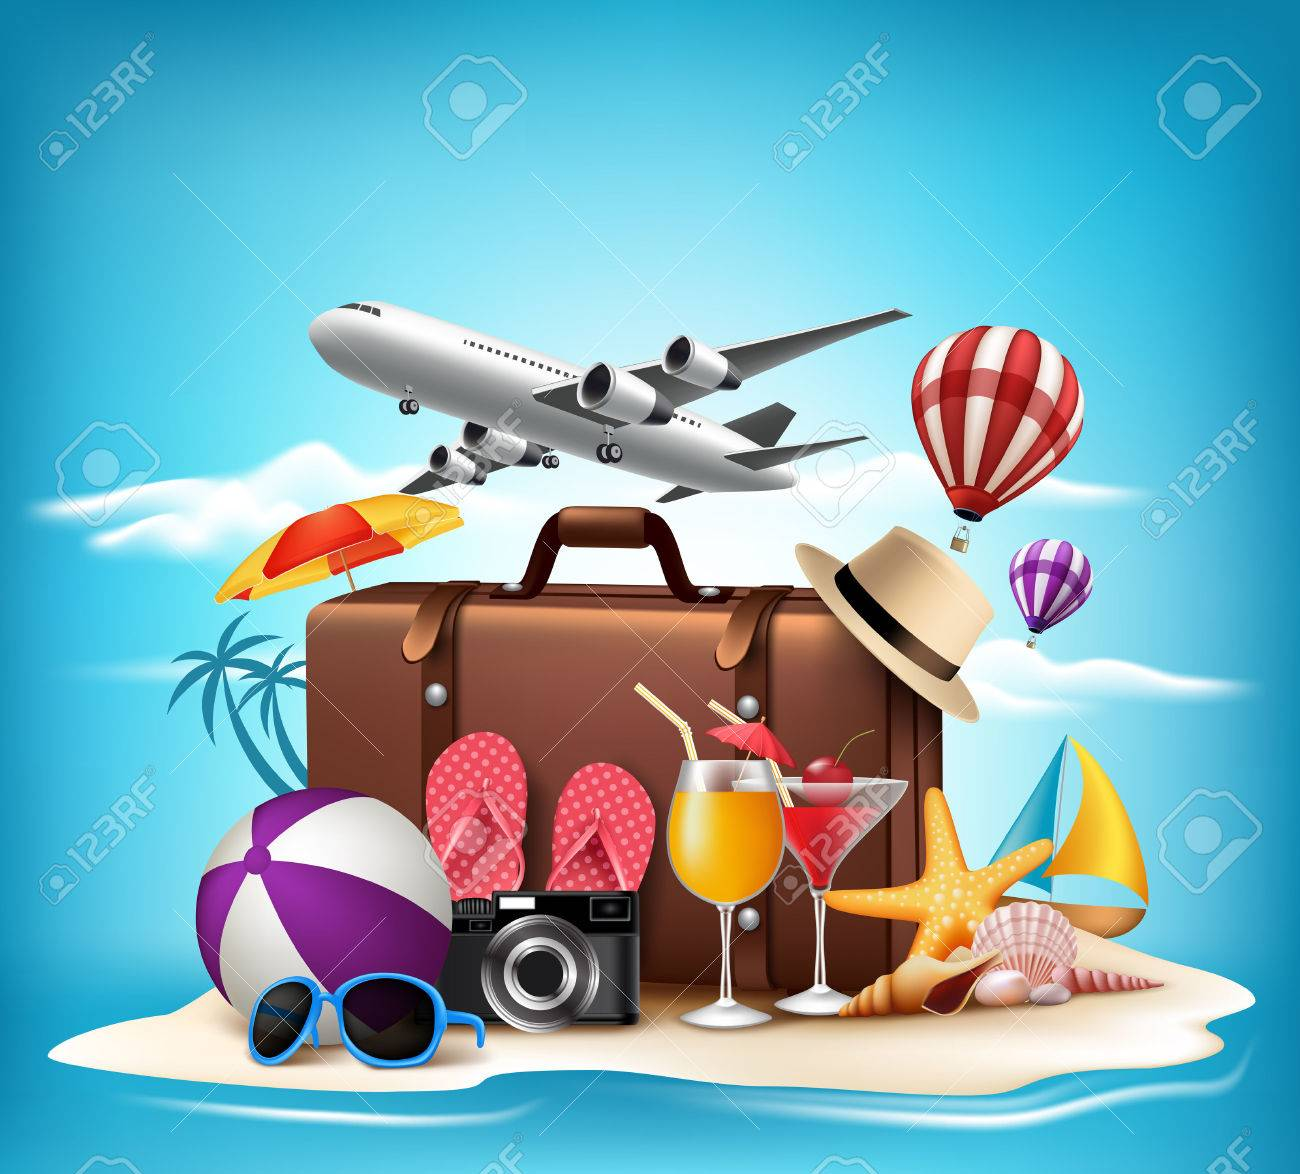 3D Realistic Summer Vacation Design for Travel in a Sand Beach Island in Horizon with Summer Items. Vector Illustration Stock Vector - 44952470